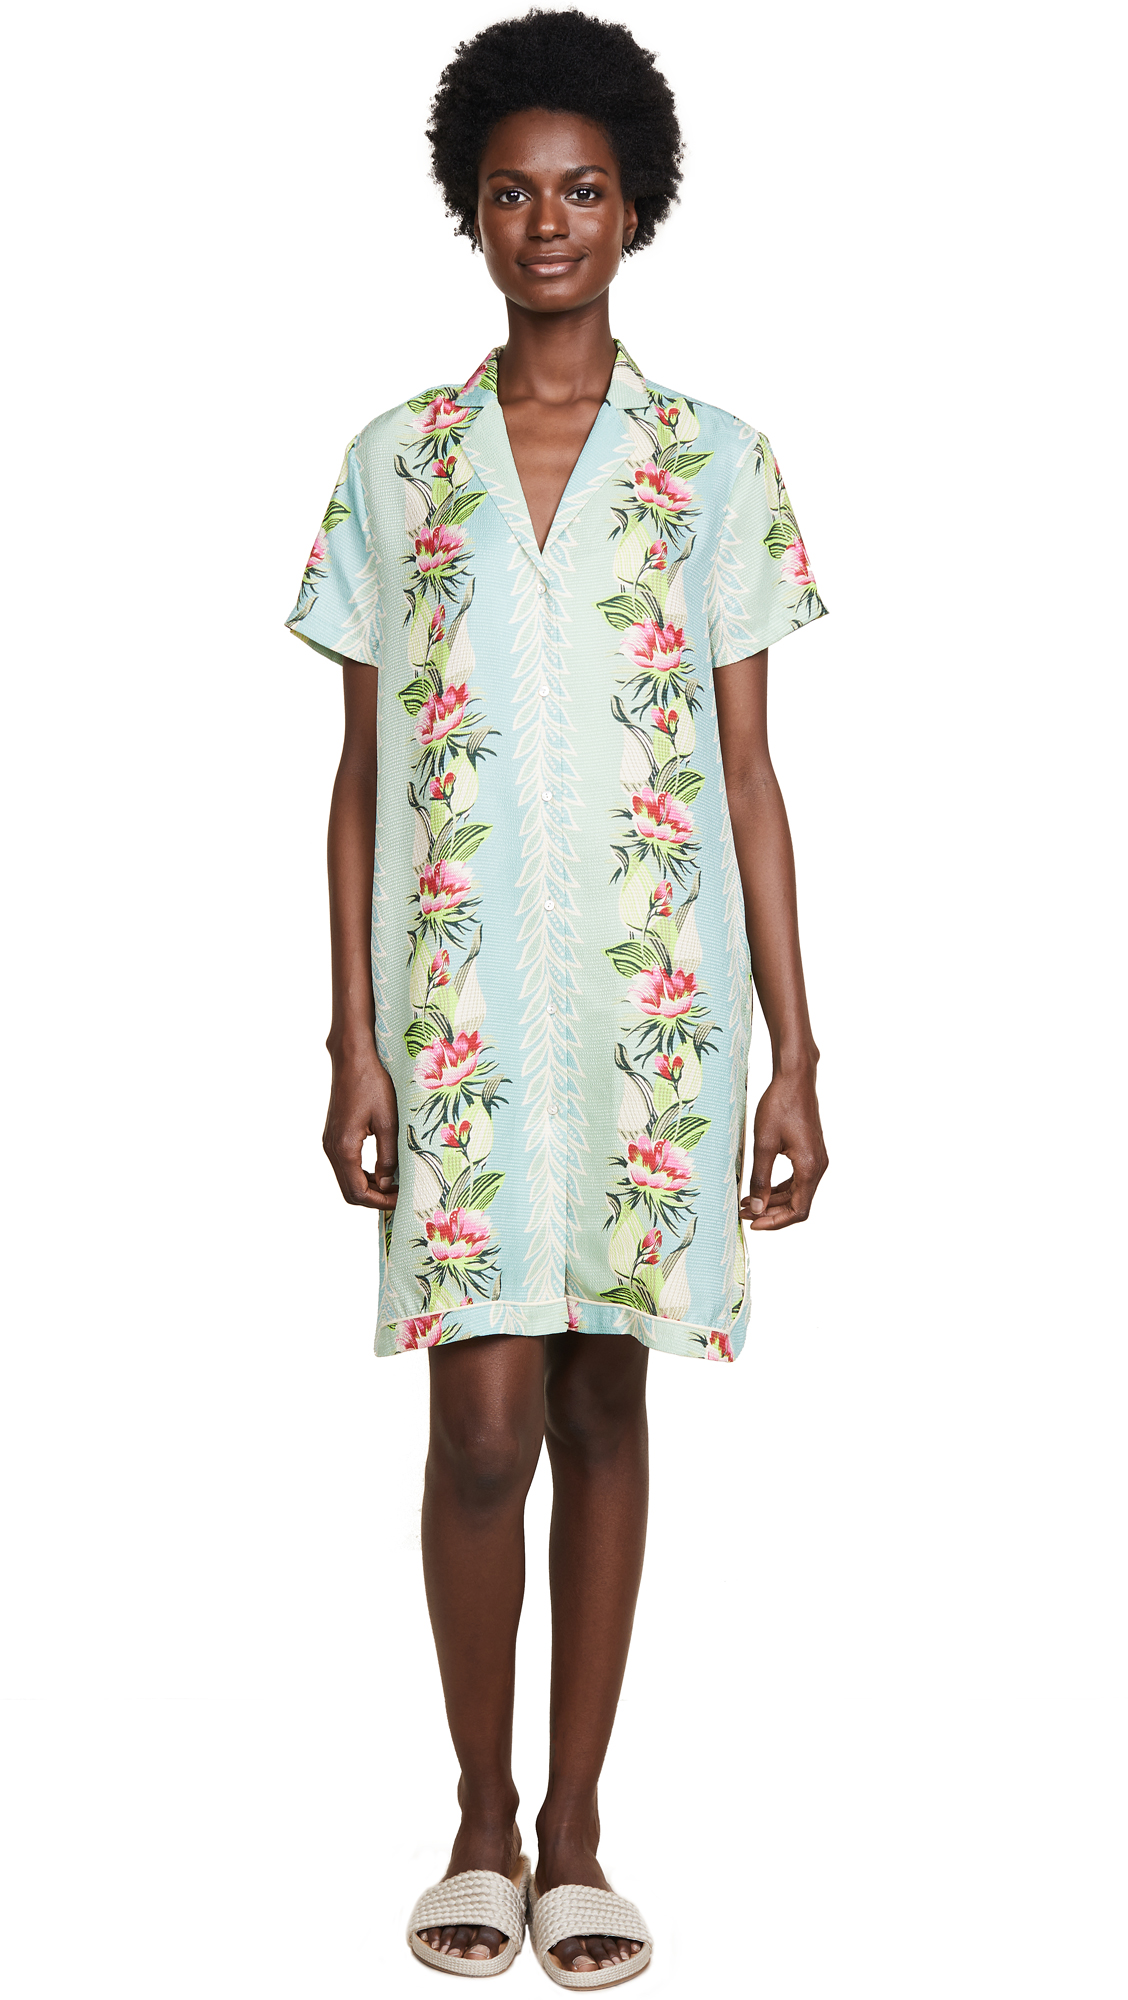 Scotch & Soda/Maison Scotch Poolside Printed Shirtdress In Combo B